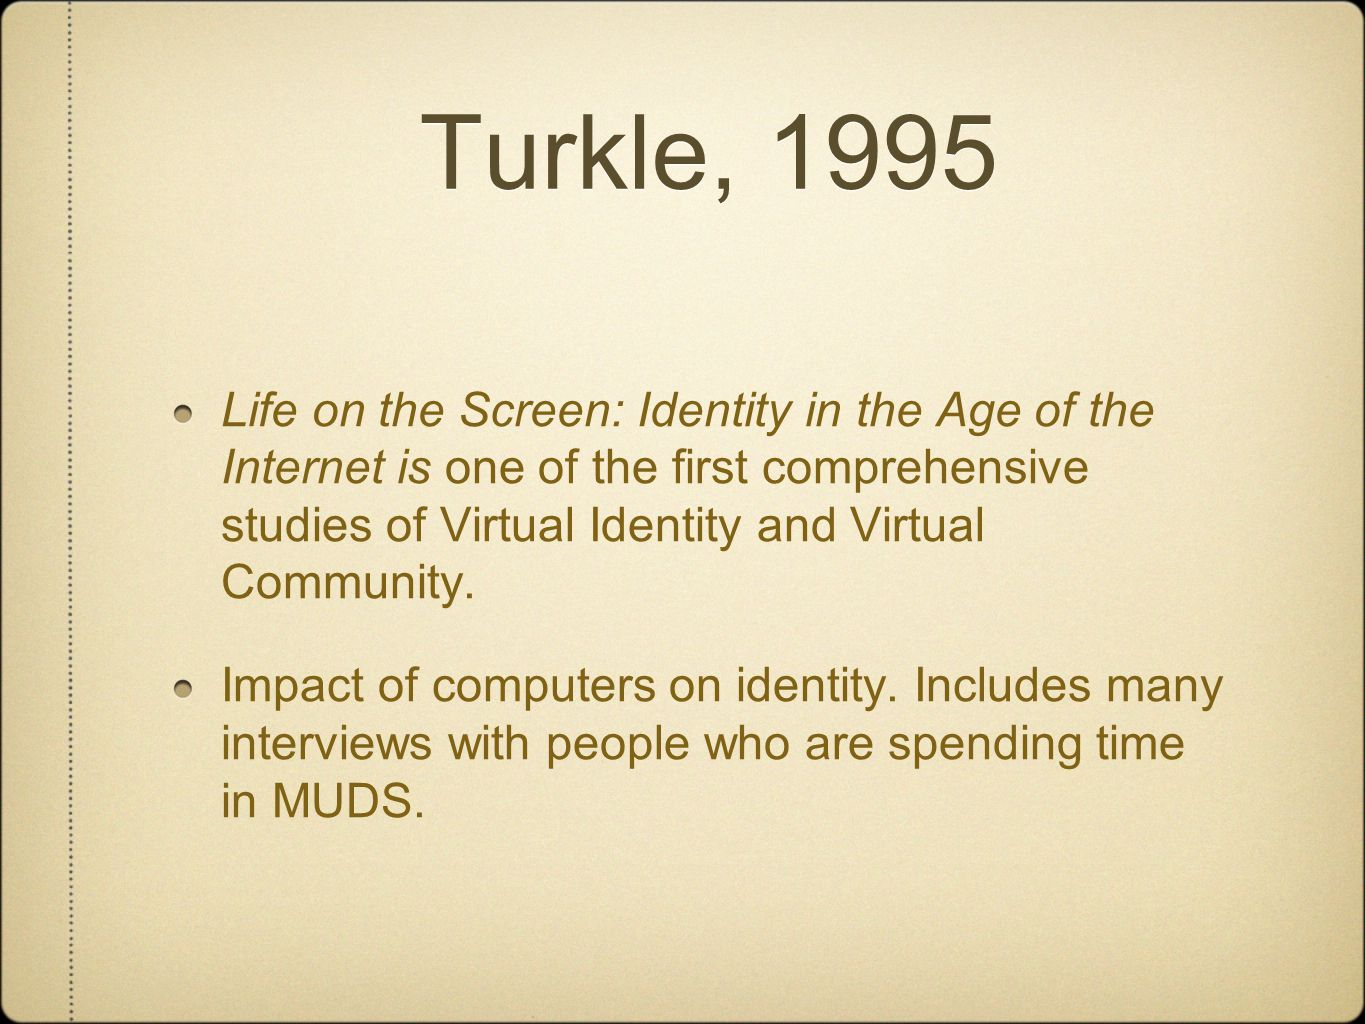 Turkle, 1995 Life on the Screen: Identity in the Age of the Internet is one of the first comprehensive studies of Virtual Identity and Virtual Community.